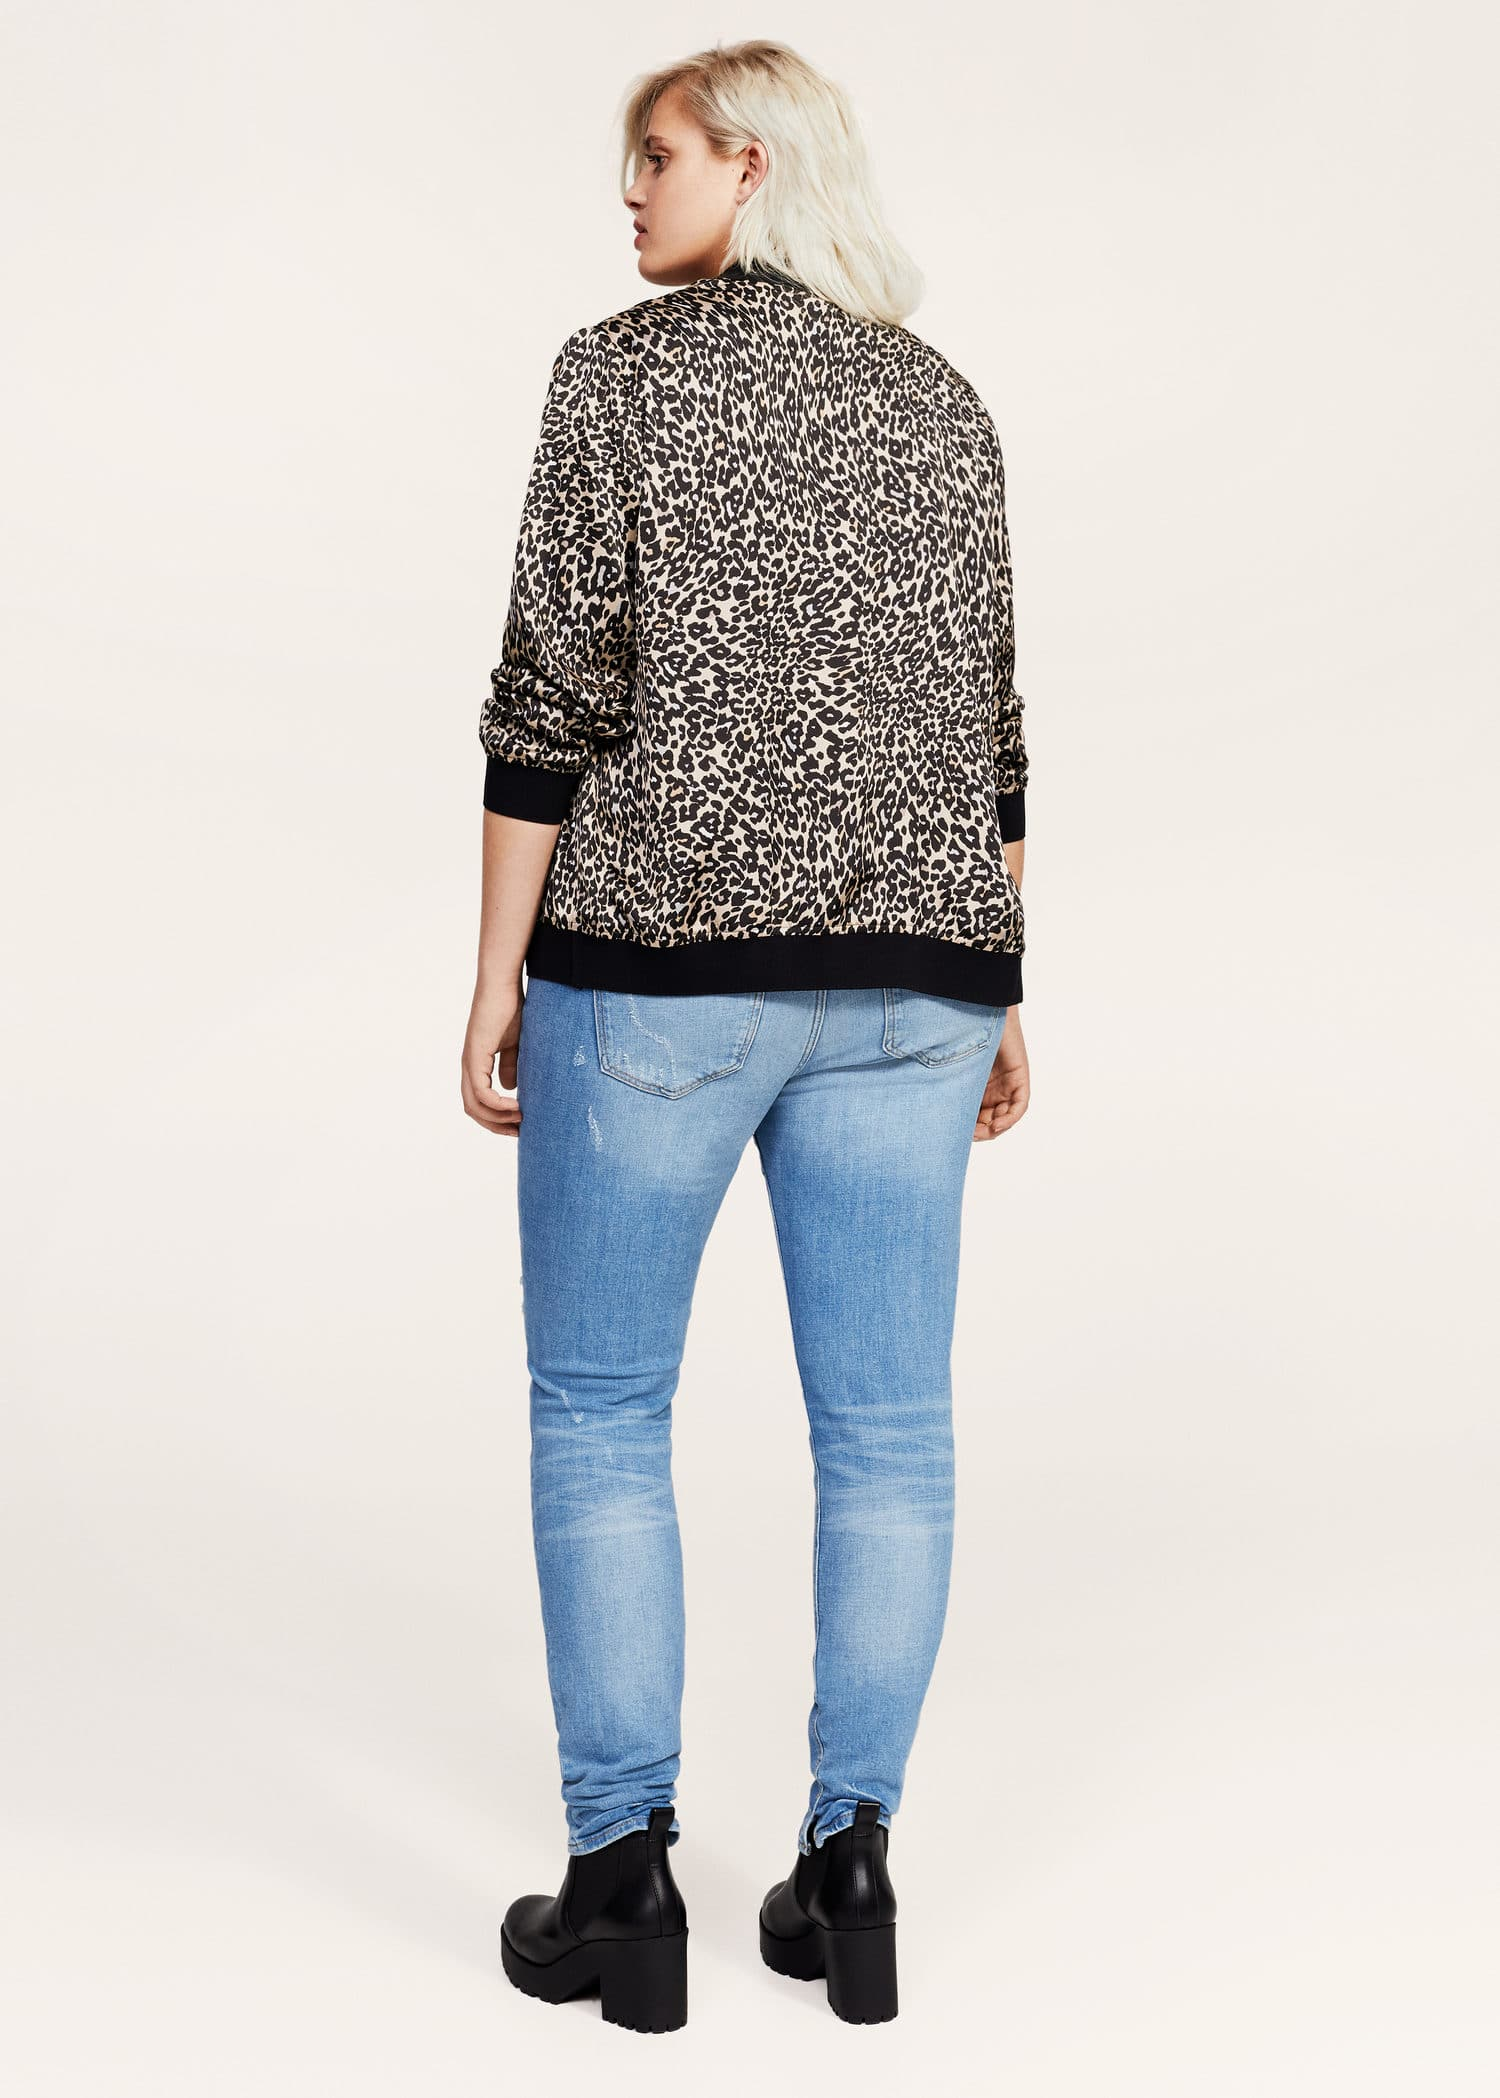 ajuste clásico 9a7f9 2bd2d Leopard print bomber jacket - Plus sizes | OUTLET Sweden